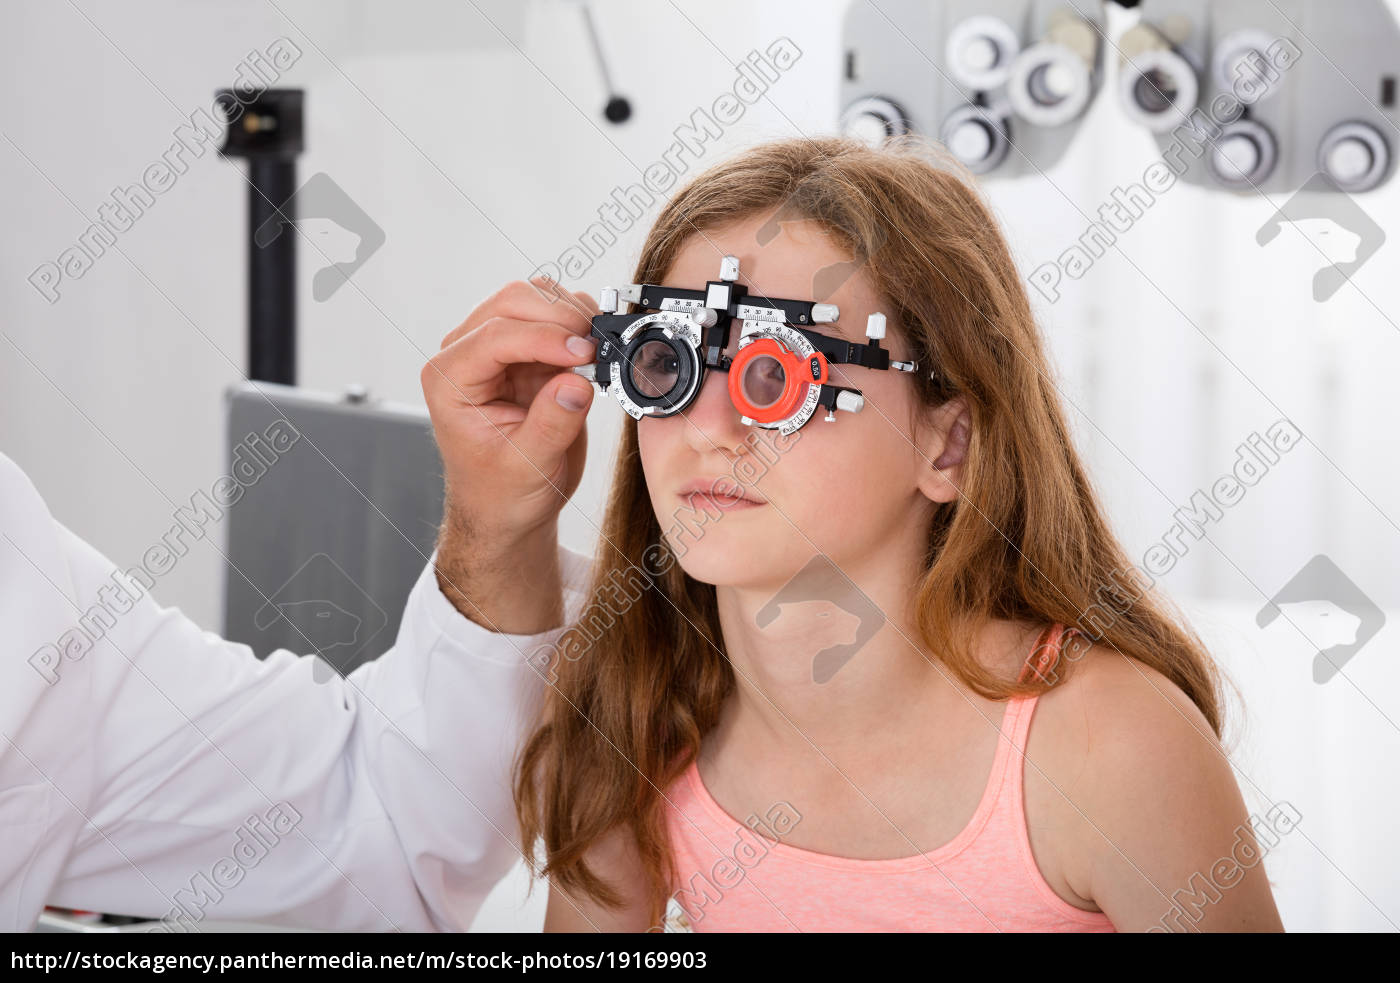 an, optometrist, checking, girl's, vision, with - 19169903